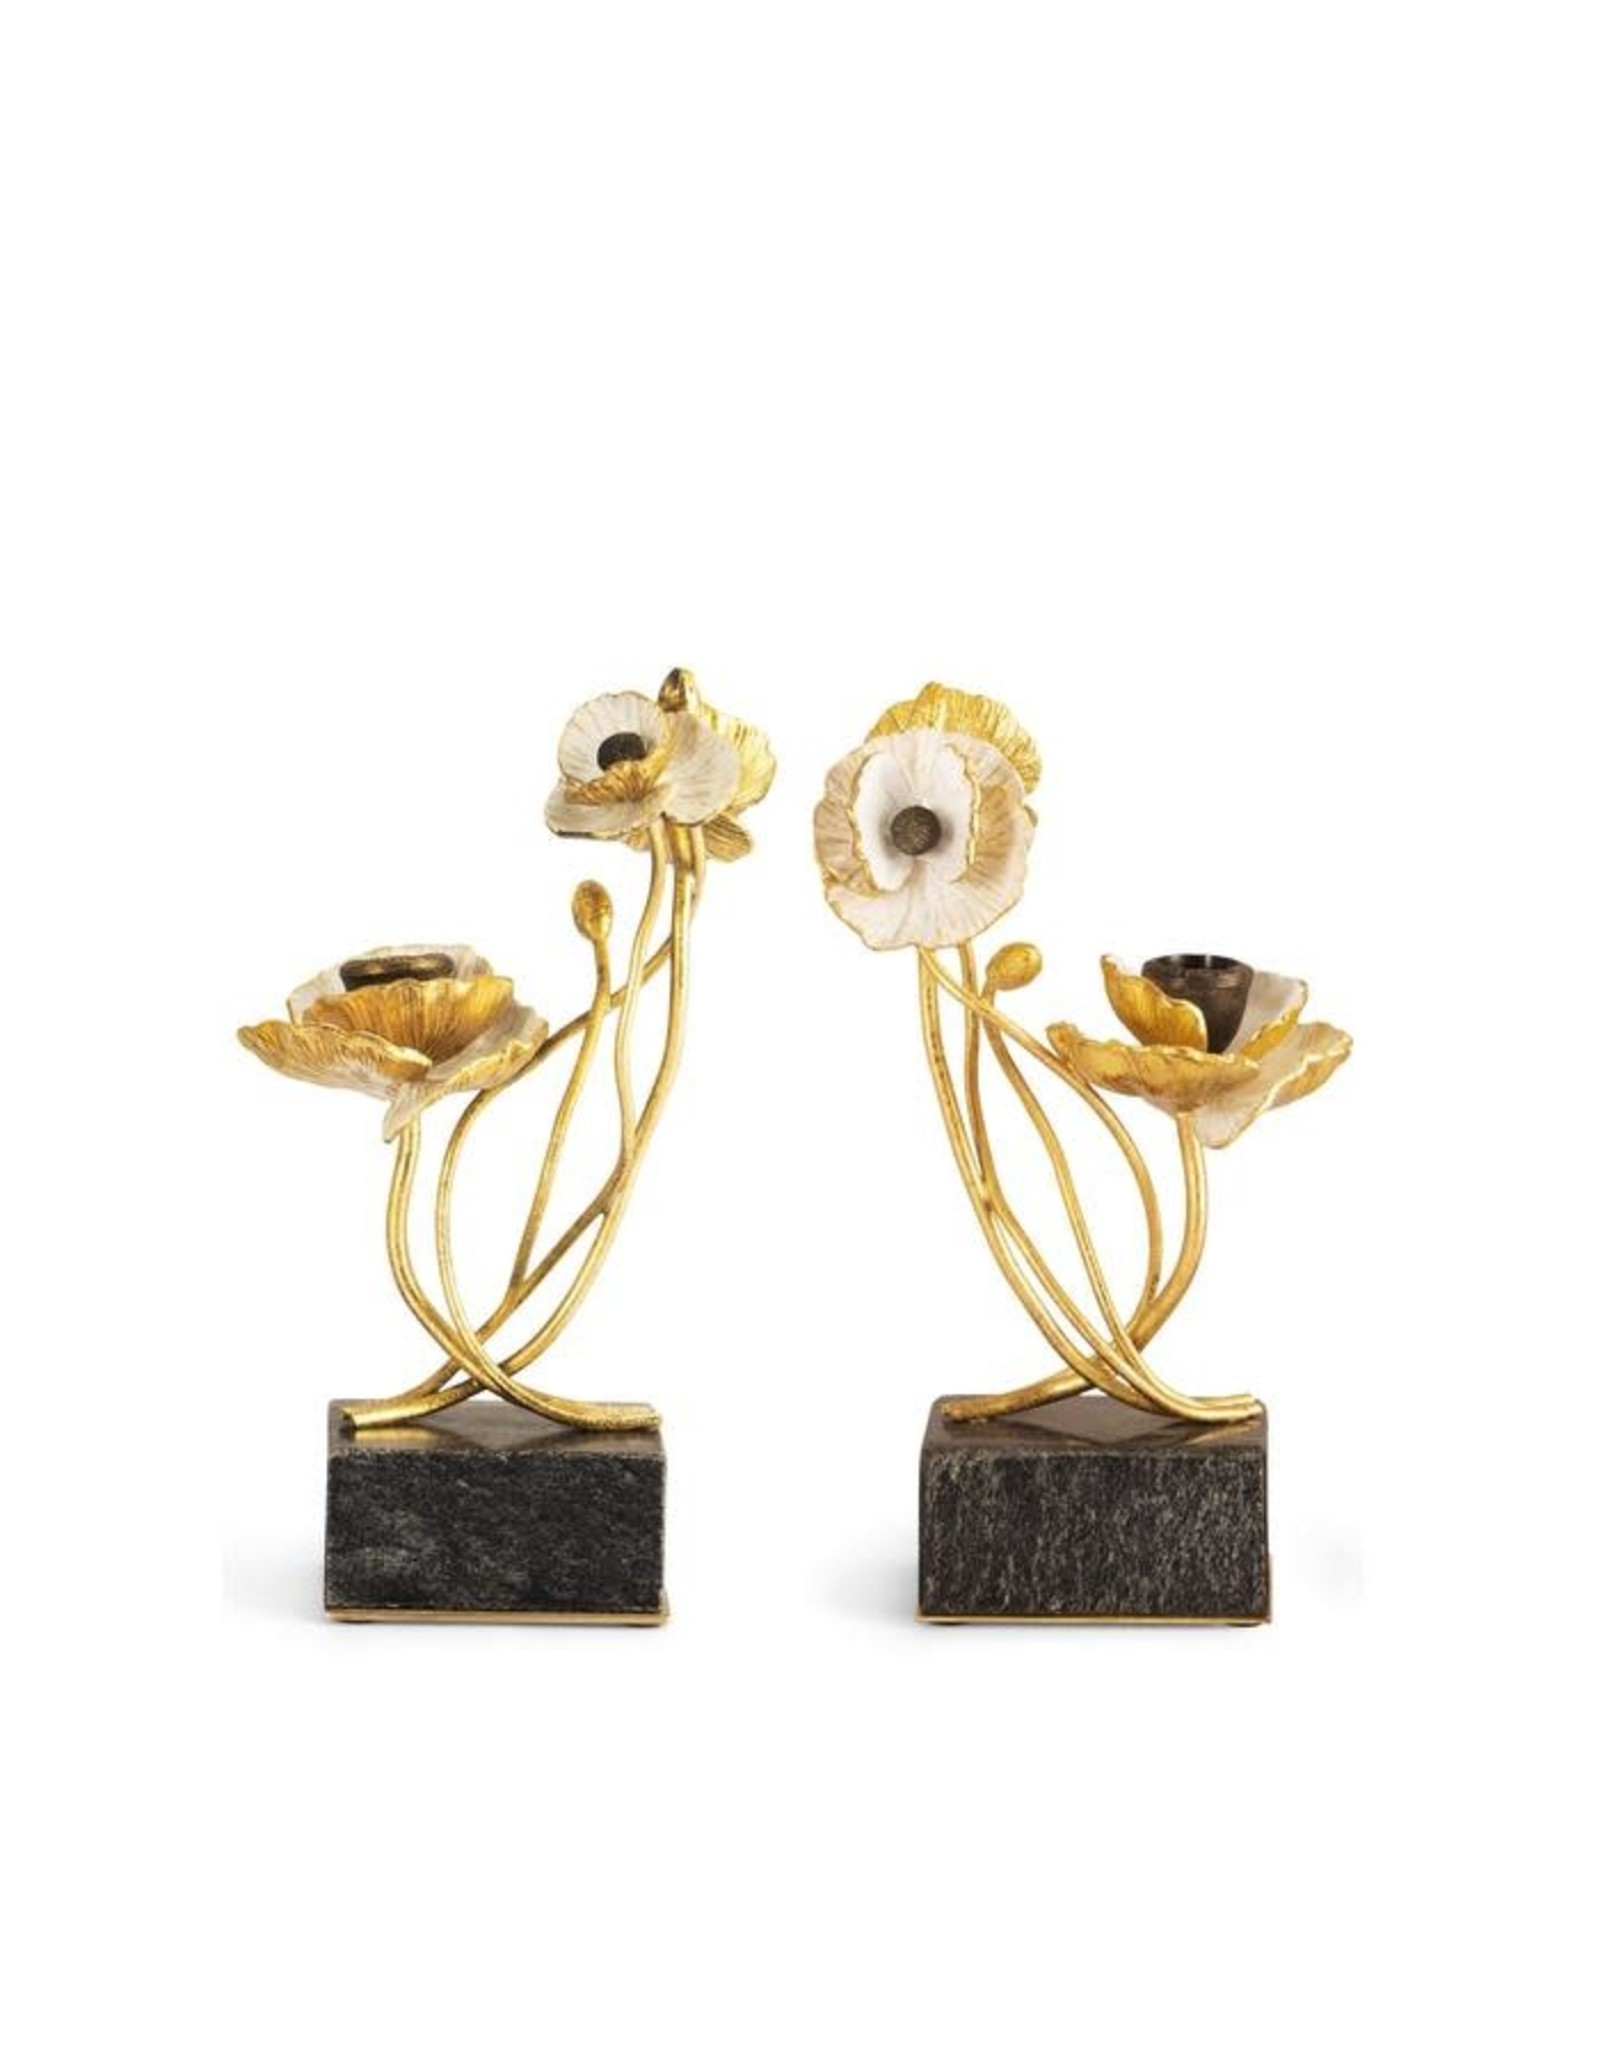 ANEMONE CANDLEHOLDERS (S/2)